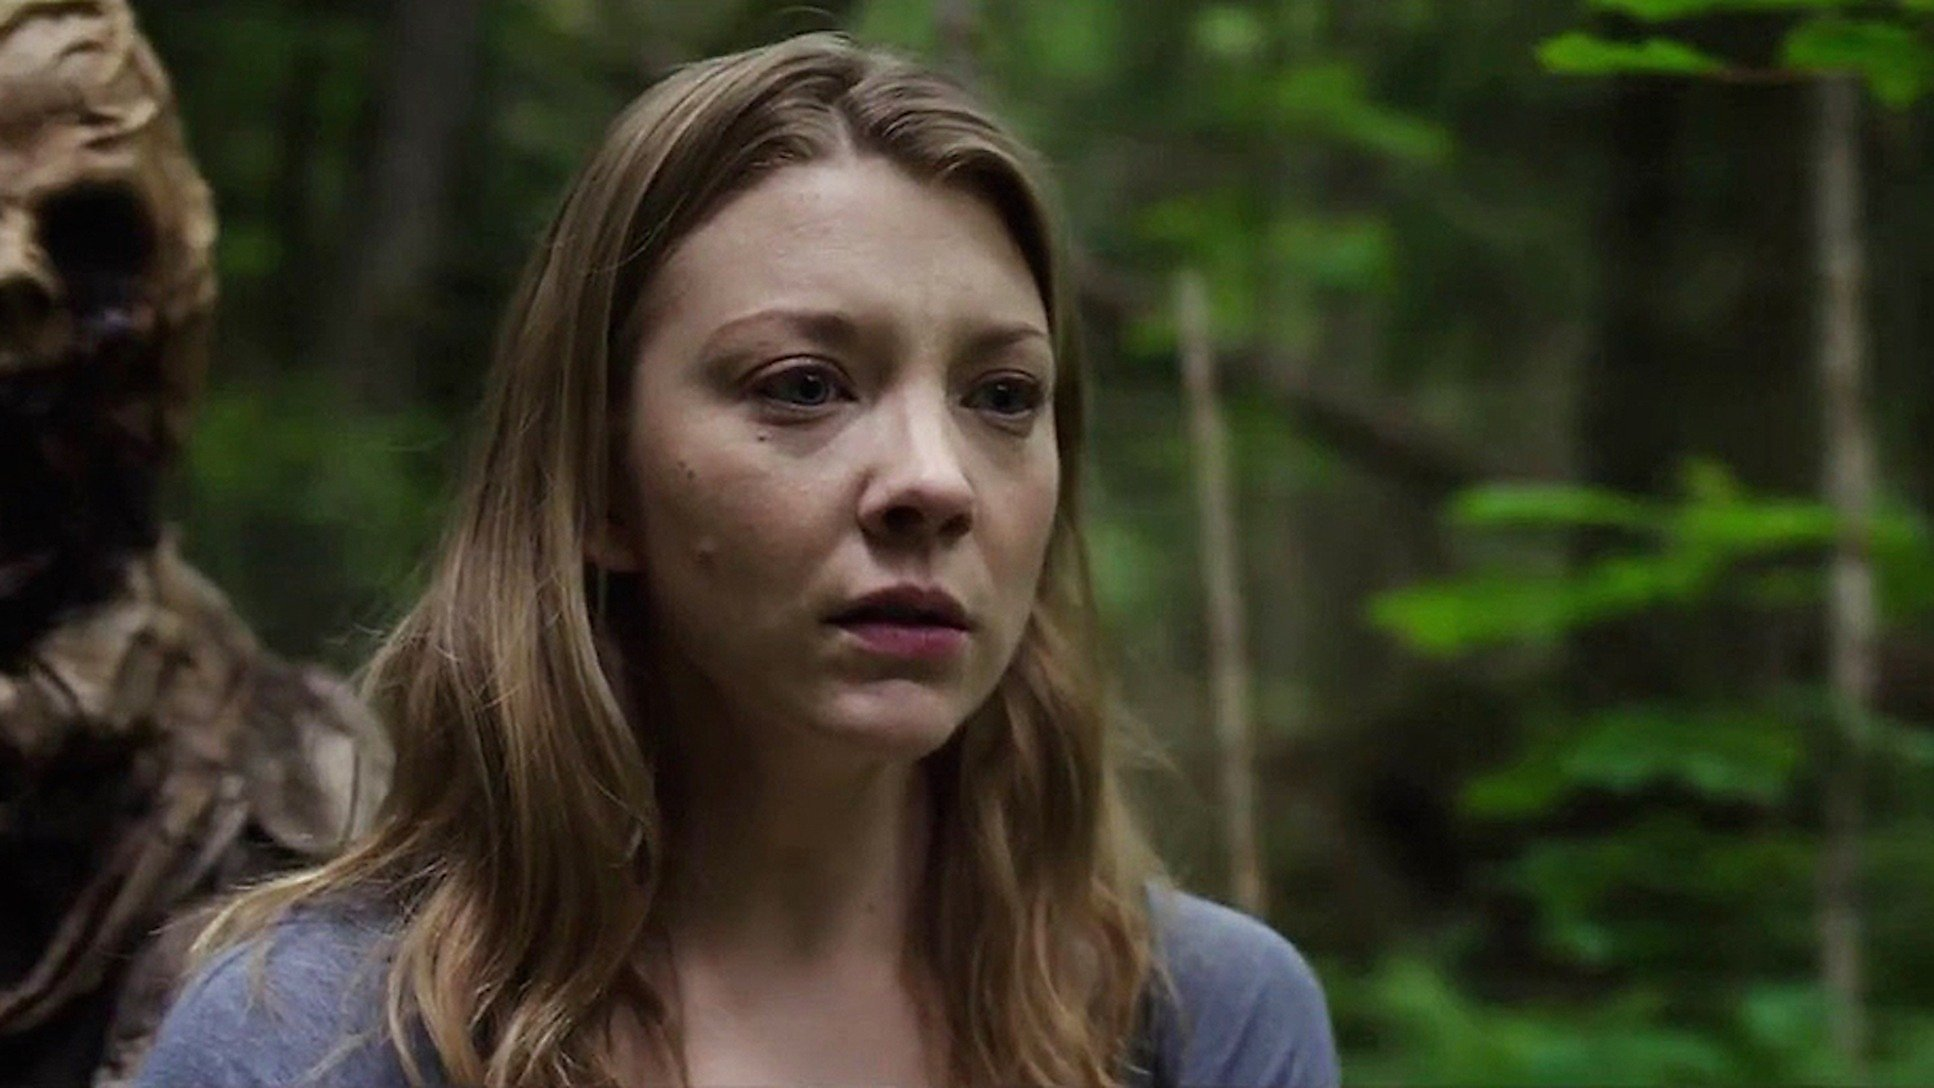 'The Forest' loses its way as a horror film - SFGate